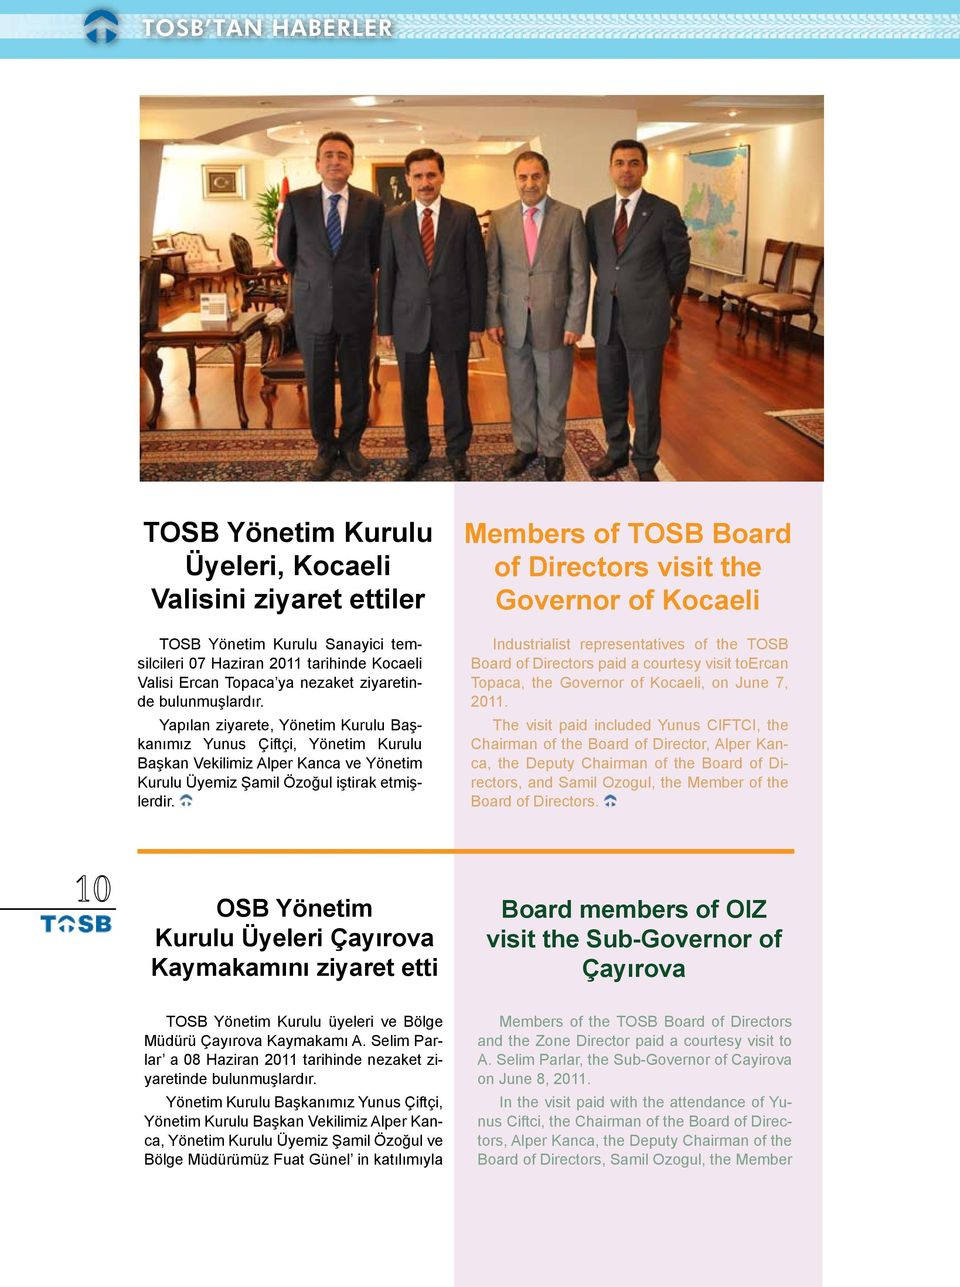 Members of TOSB Board of Directors visit the Governor of Kocaeli Industrialist representatives of the TOSB Board of Directors paid a courtesy visit toercan Topaca, the Governor of Kocaeli, on June 7,